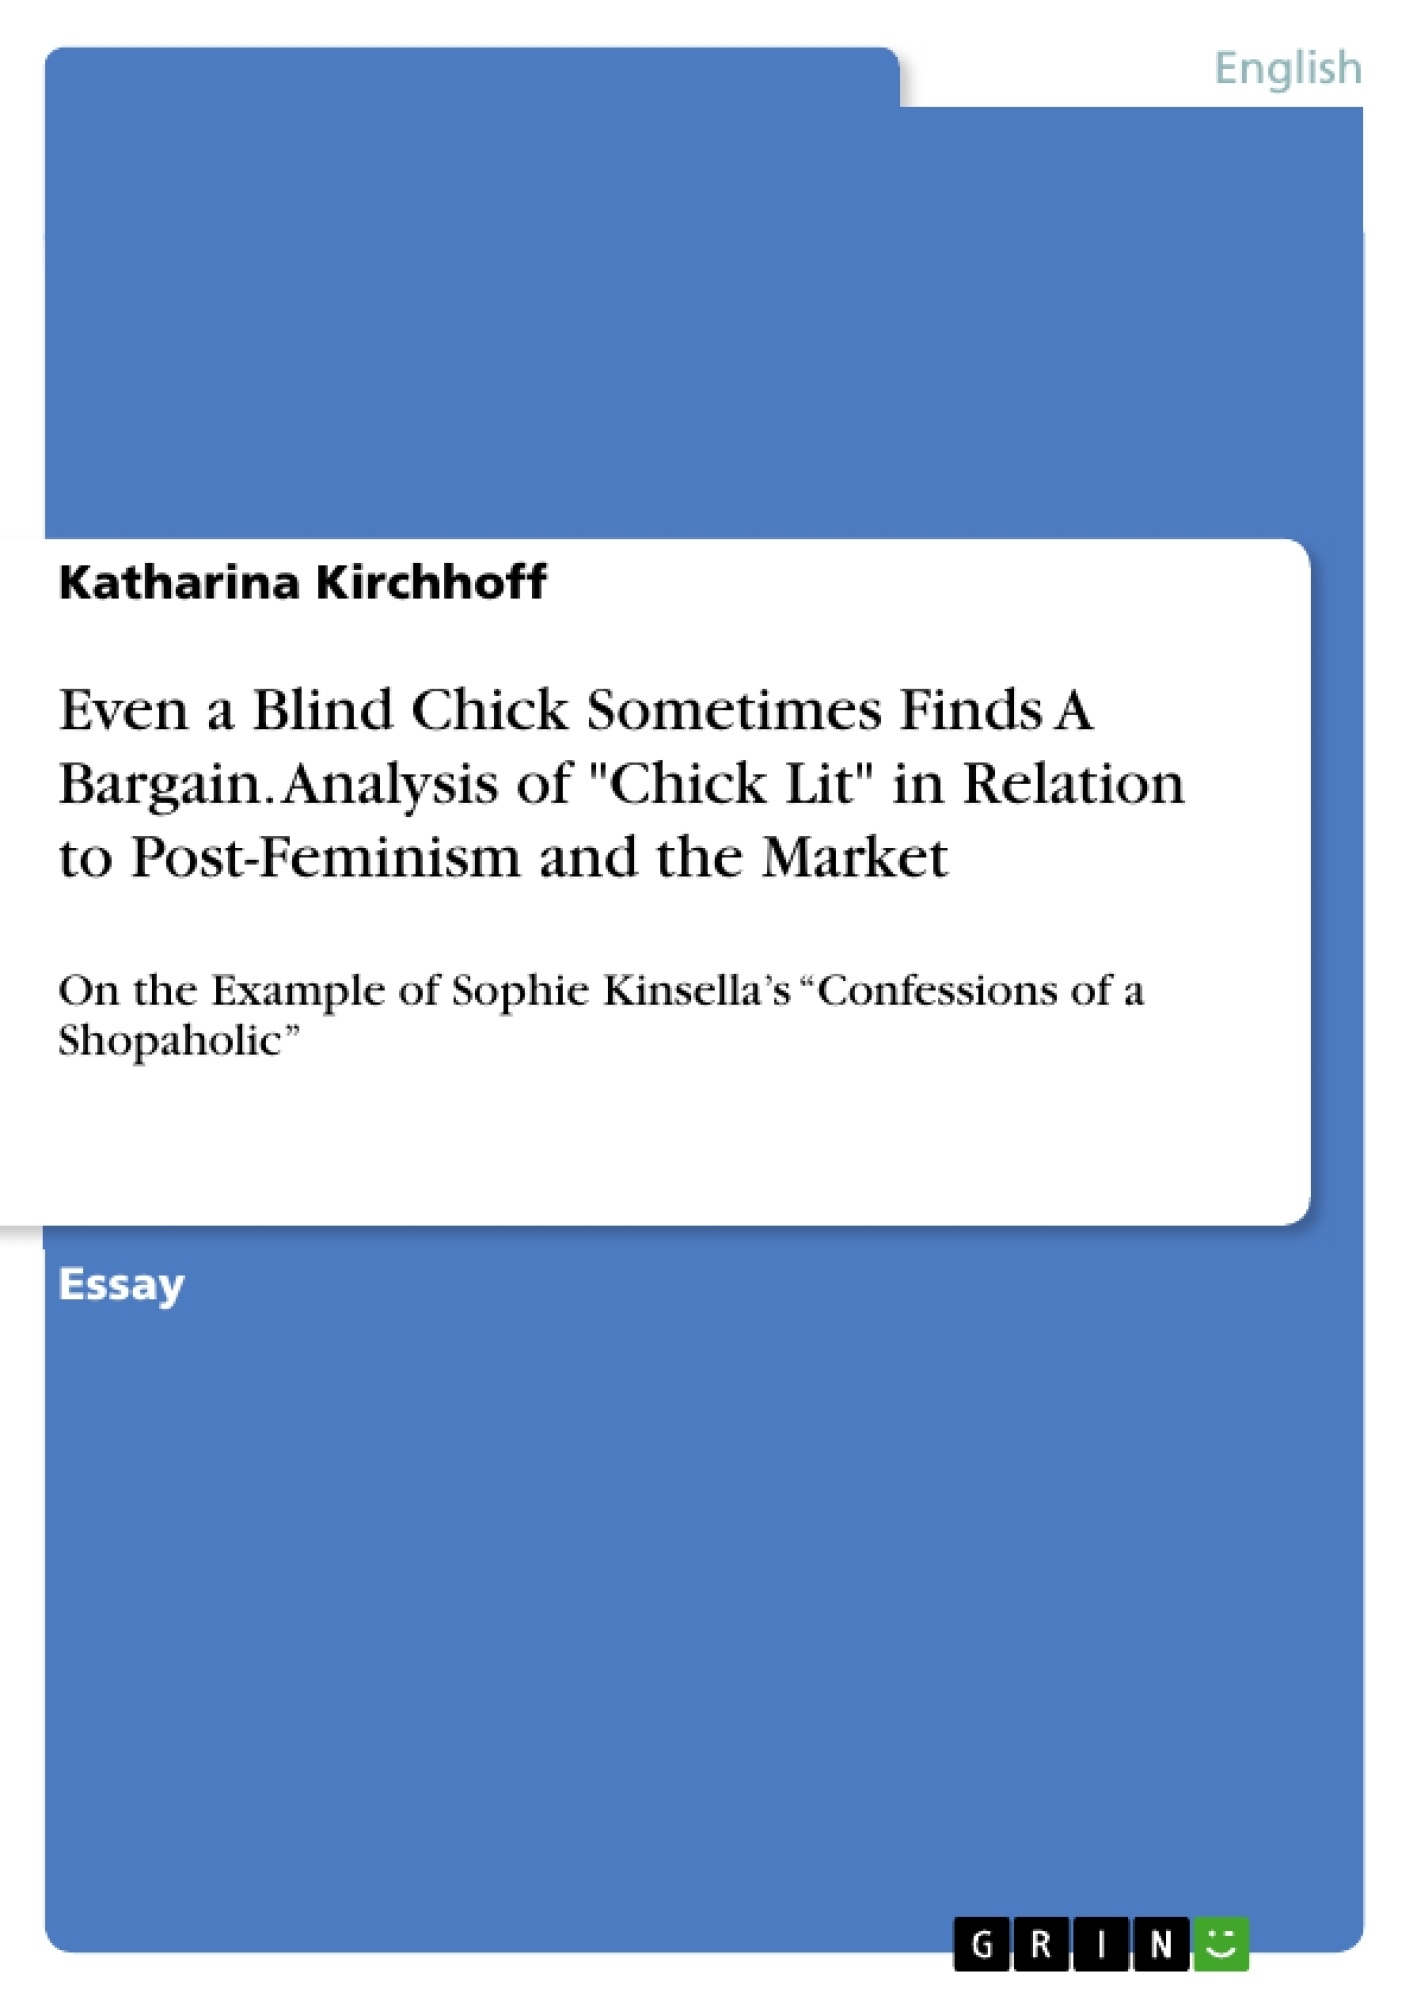 """Title: Even a Blind Chick Sometimes Finds A Bargain. Analysis of """"Chick Lit"""" in Relation to Post-Feminism and the Market"""